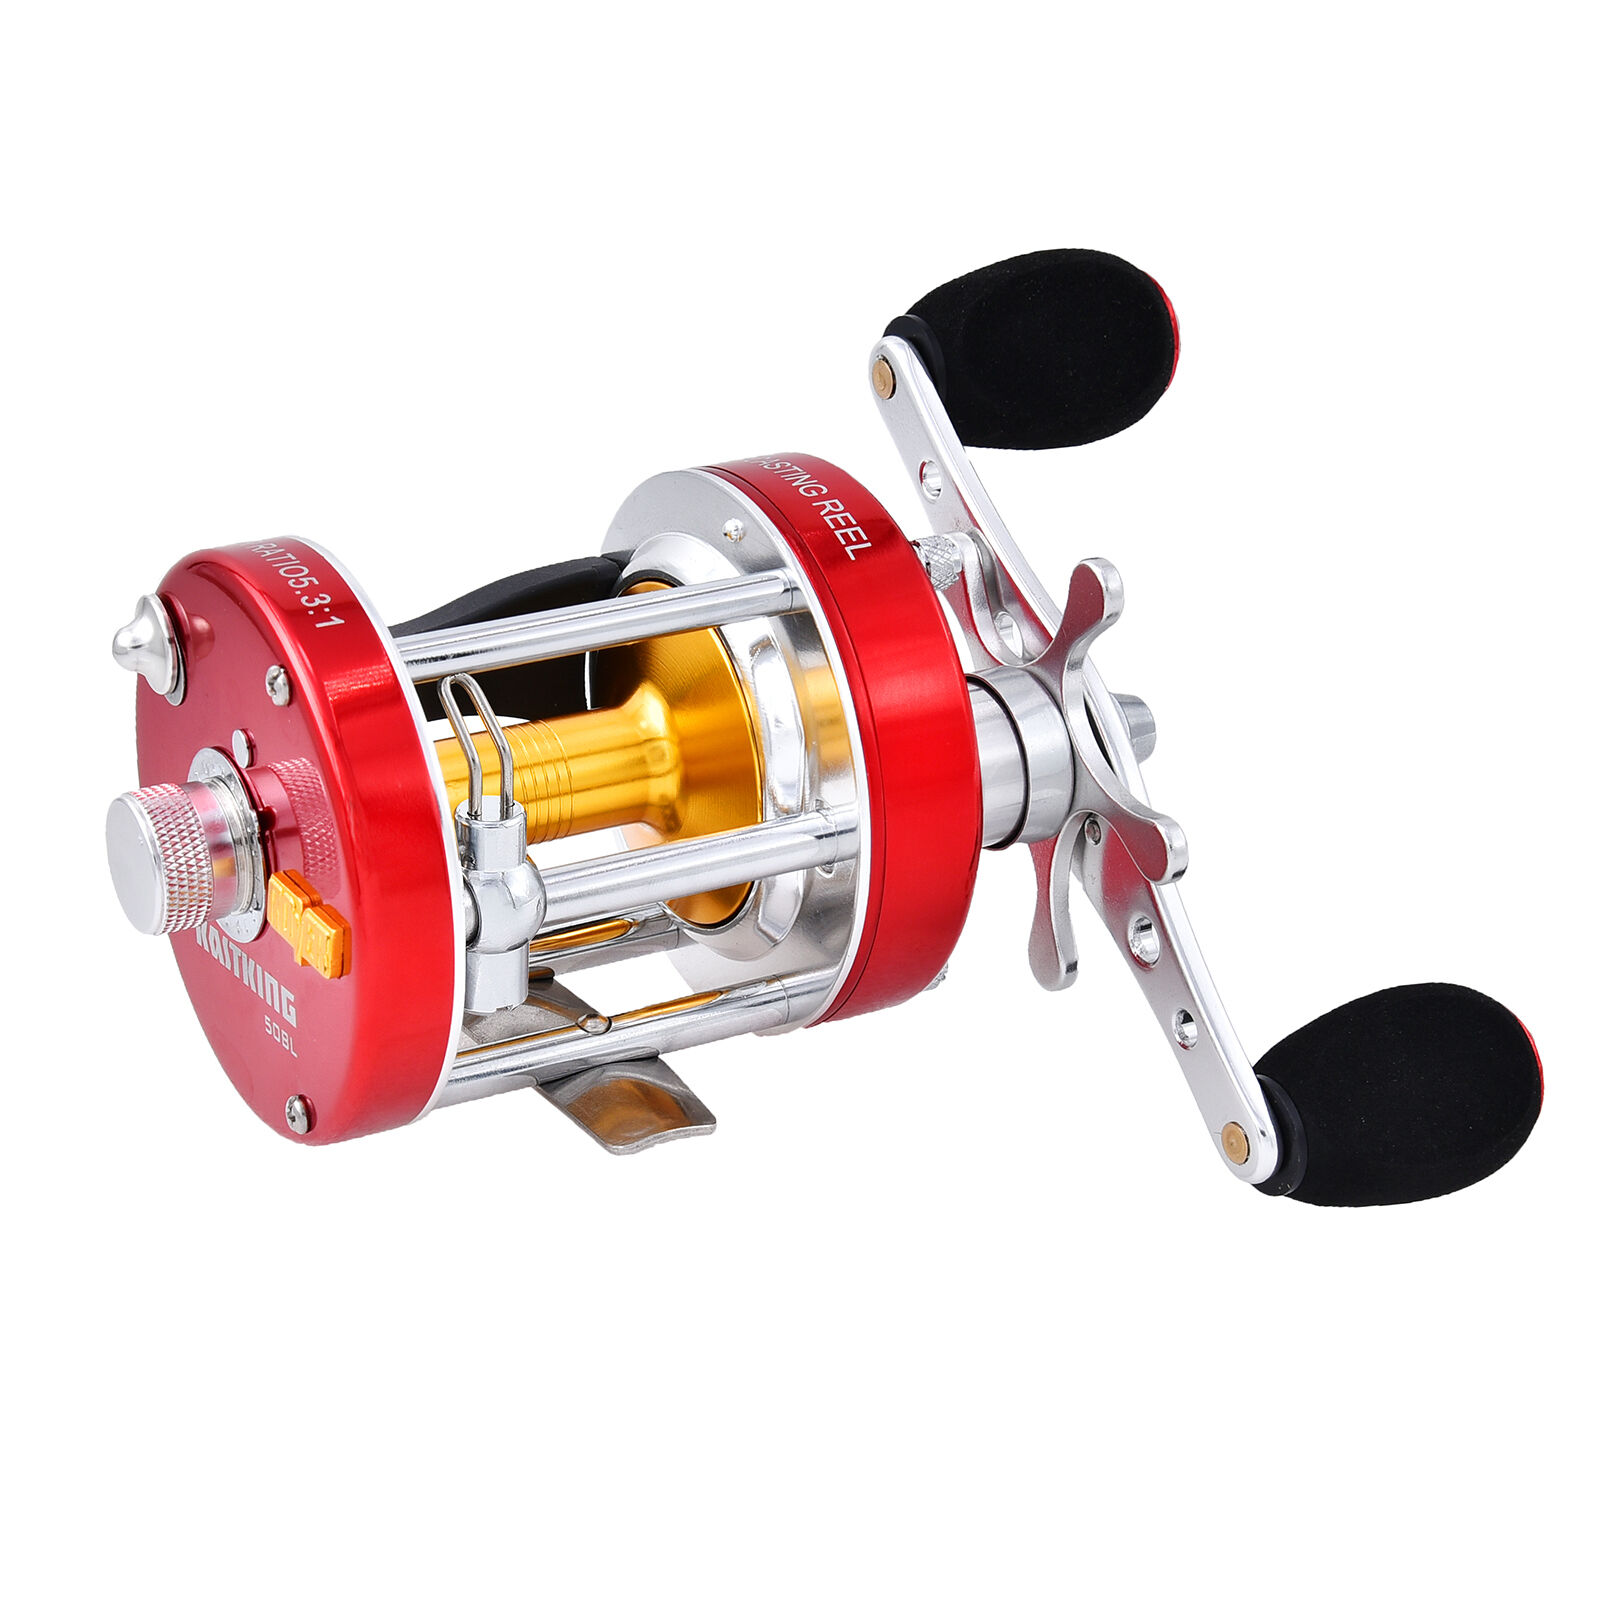 How to spool a conventional reel - Picture 1 Of 6